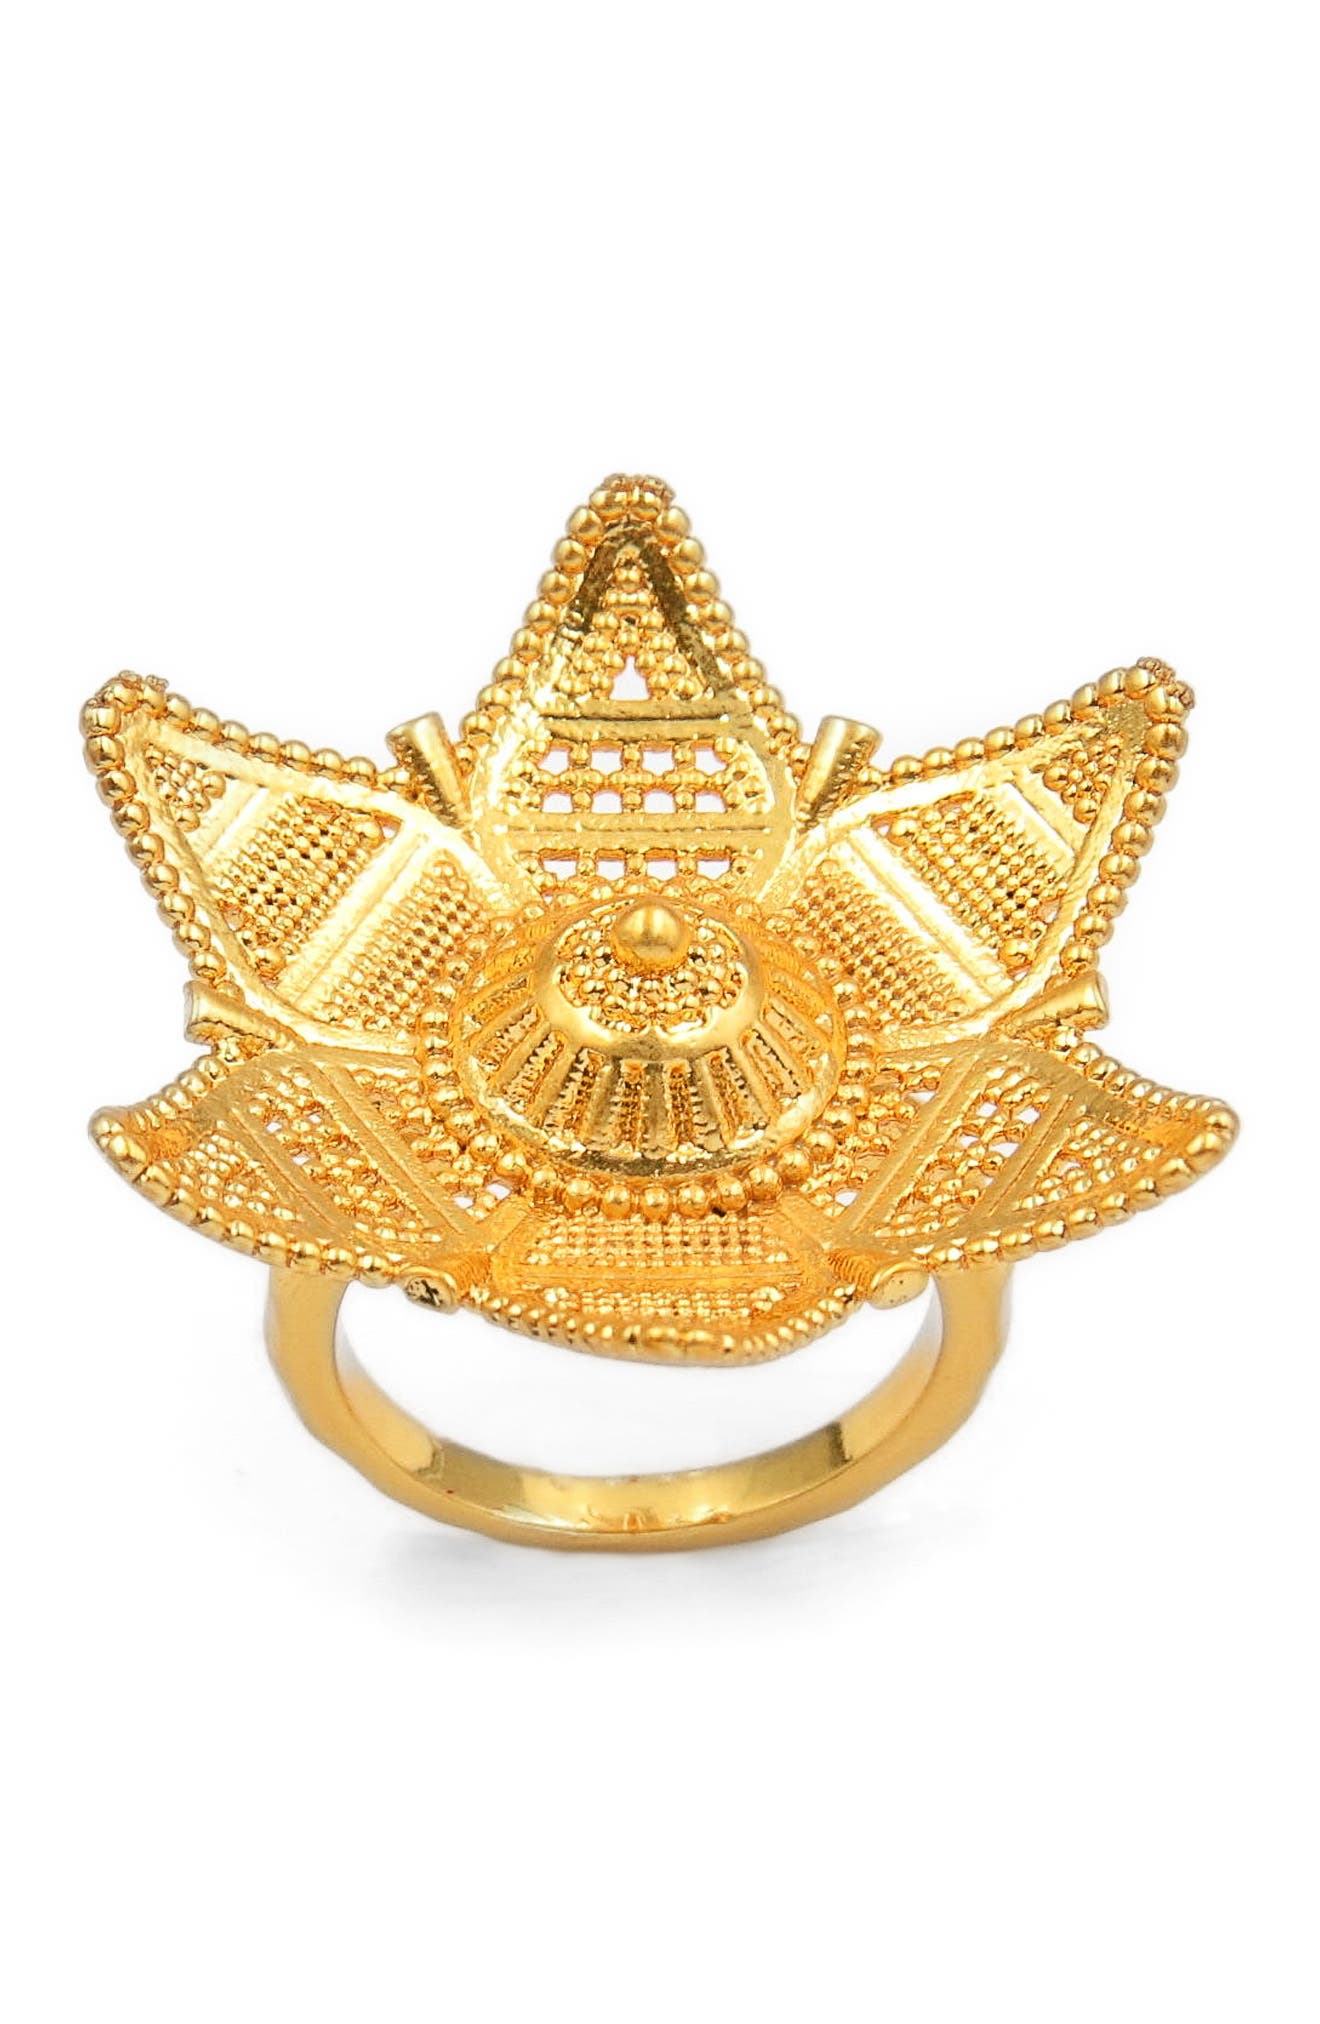 Six-Point Filigree Star Ring,                             Alternate thumbnail 3, color,                             Gold